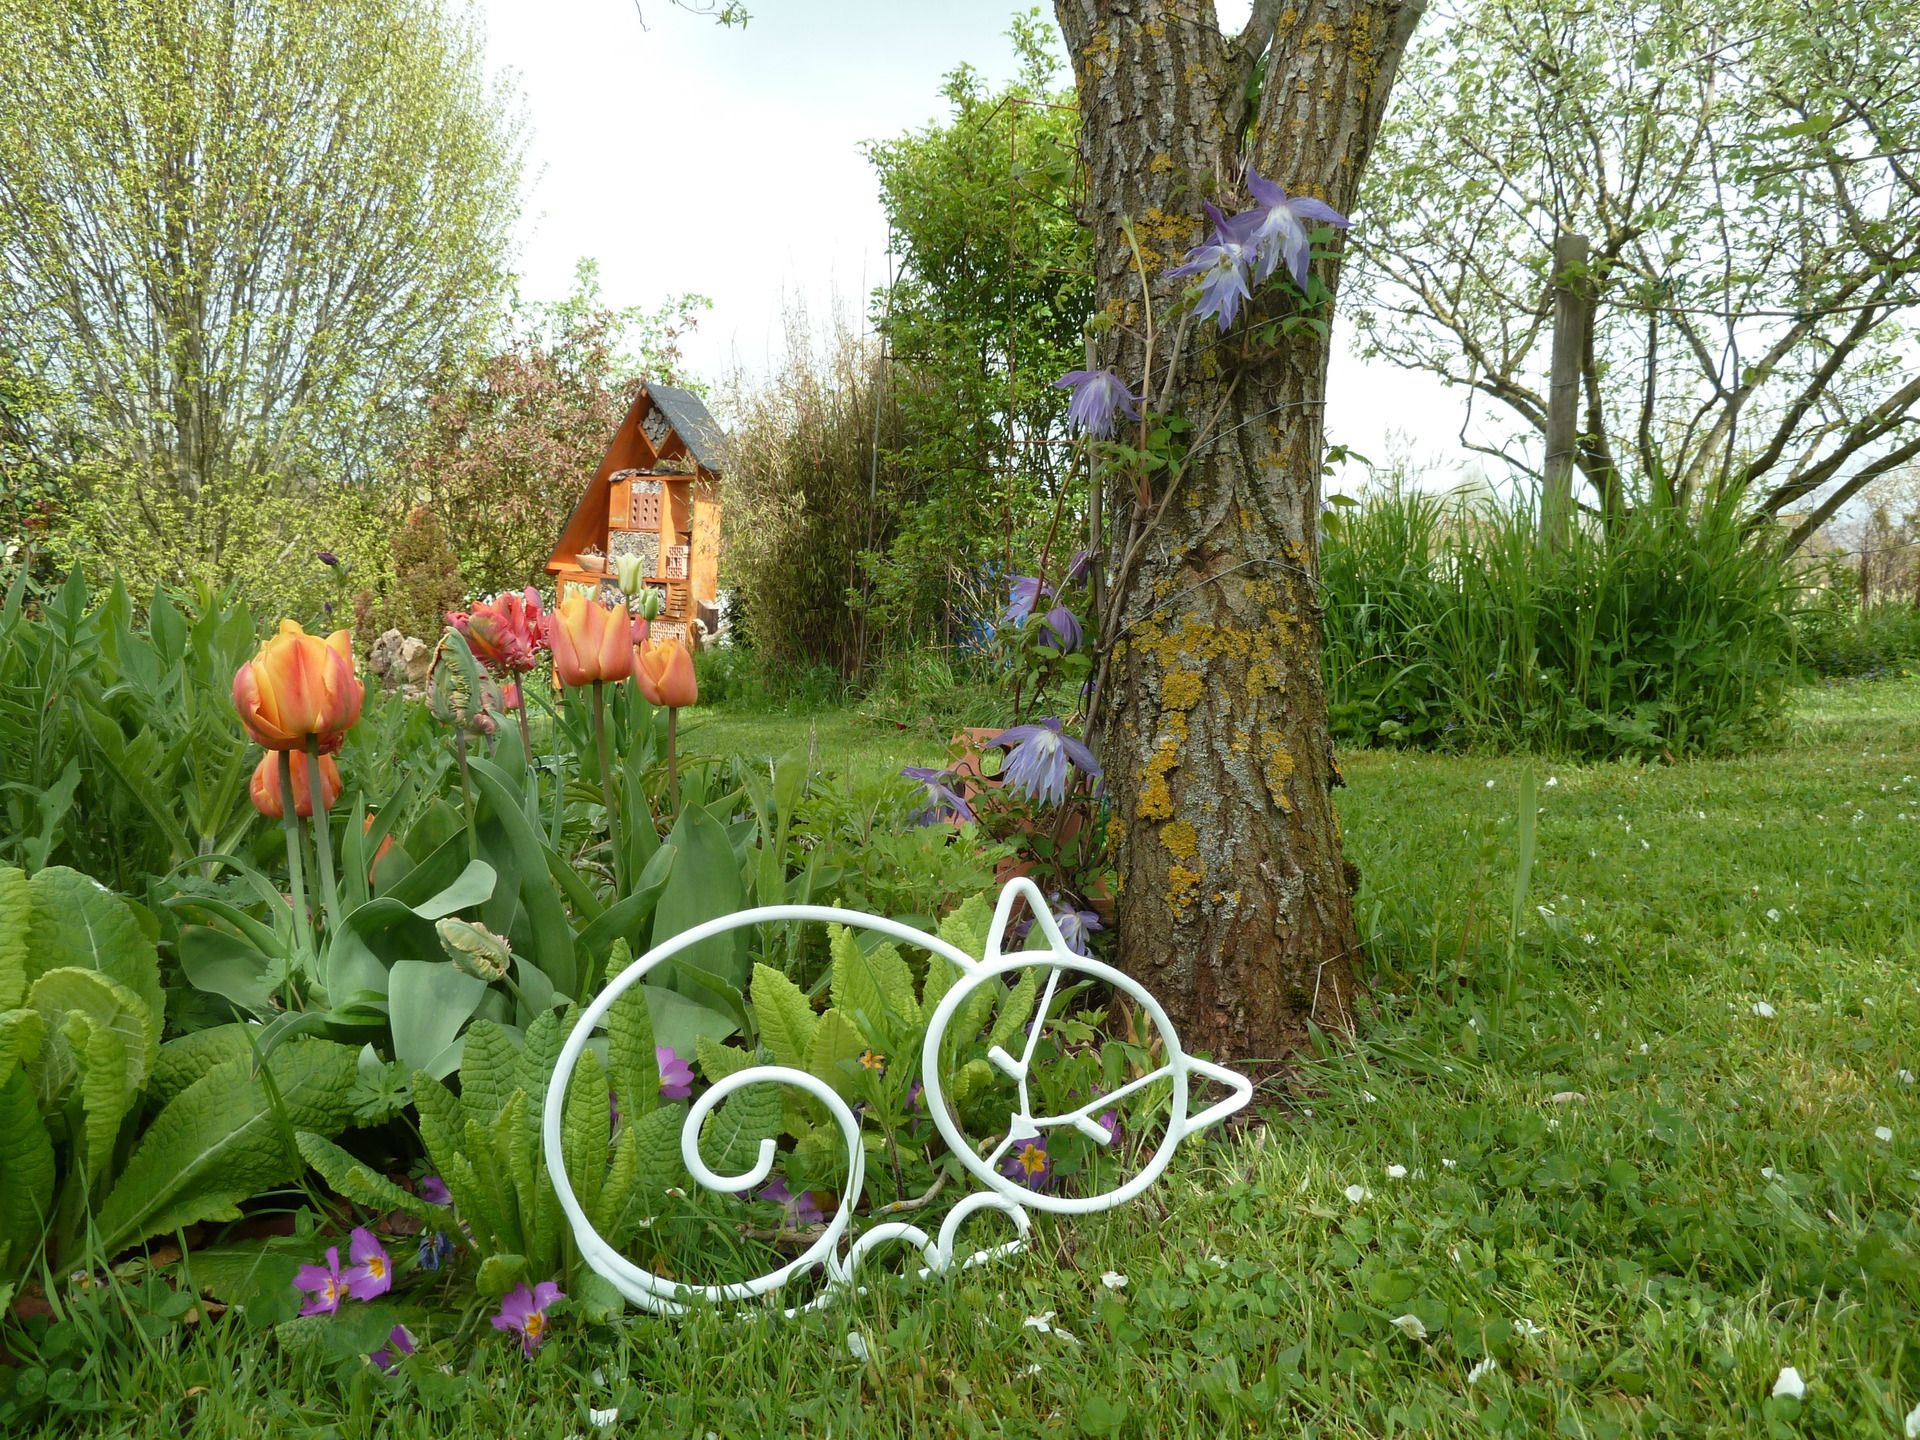 Decoration De Jardin En Fer Forge.Chat Qui Dort En Fer Forge Blanc Pour Decoration De Jardin